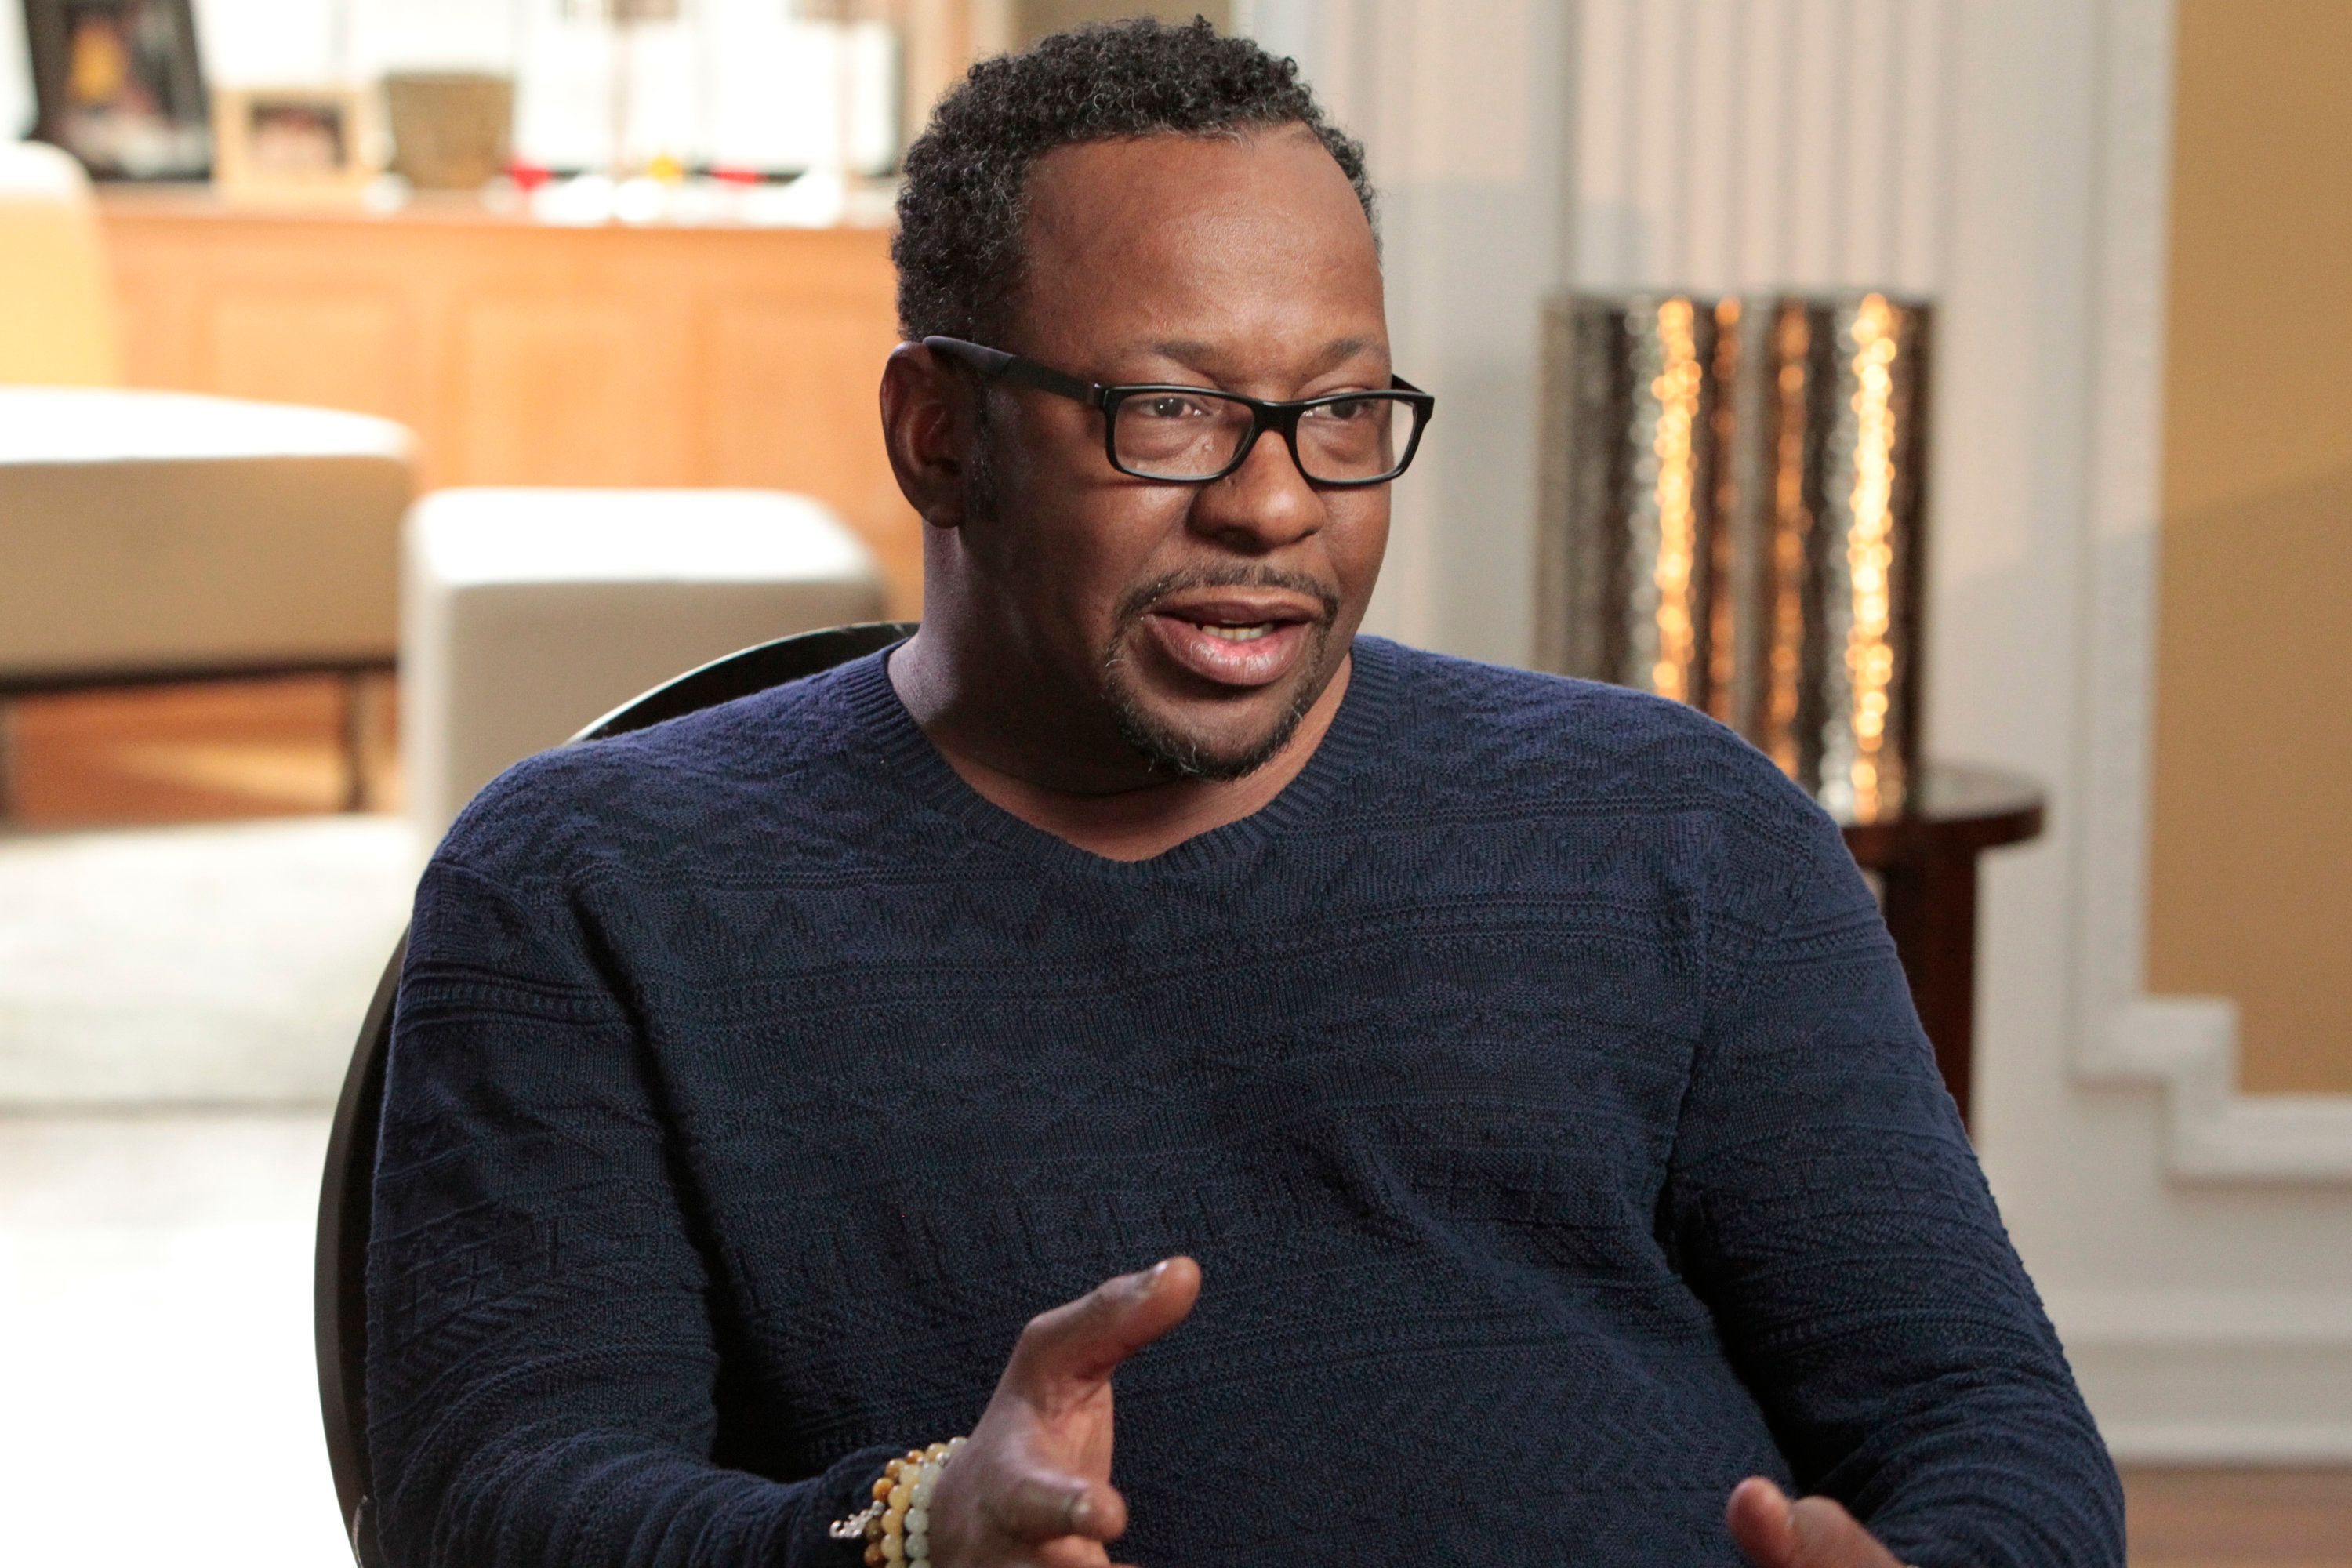 20/20 -  In his memoir 'Every Little Step' which will be released in June, Bobby Brown writes about his decades-long successful music career and opens up about plans for the future.    Brown sits down with ABC News Robin Roberts for an exclusive interview discussing at length the truth about his journey. which will air as a special edition of 20/20 on TUESDAY, JUNE 7 (10-11pm, ET) on the ABC Television Network.   (Photo by Rick Rowell/ABC via Getty Images)   BOBBY BROWN